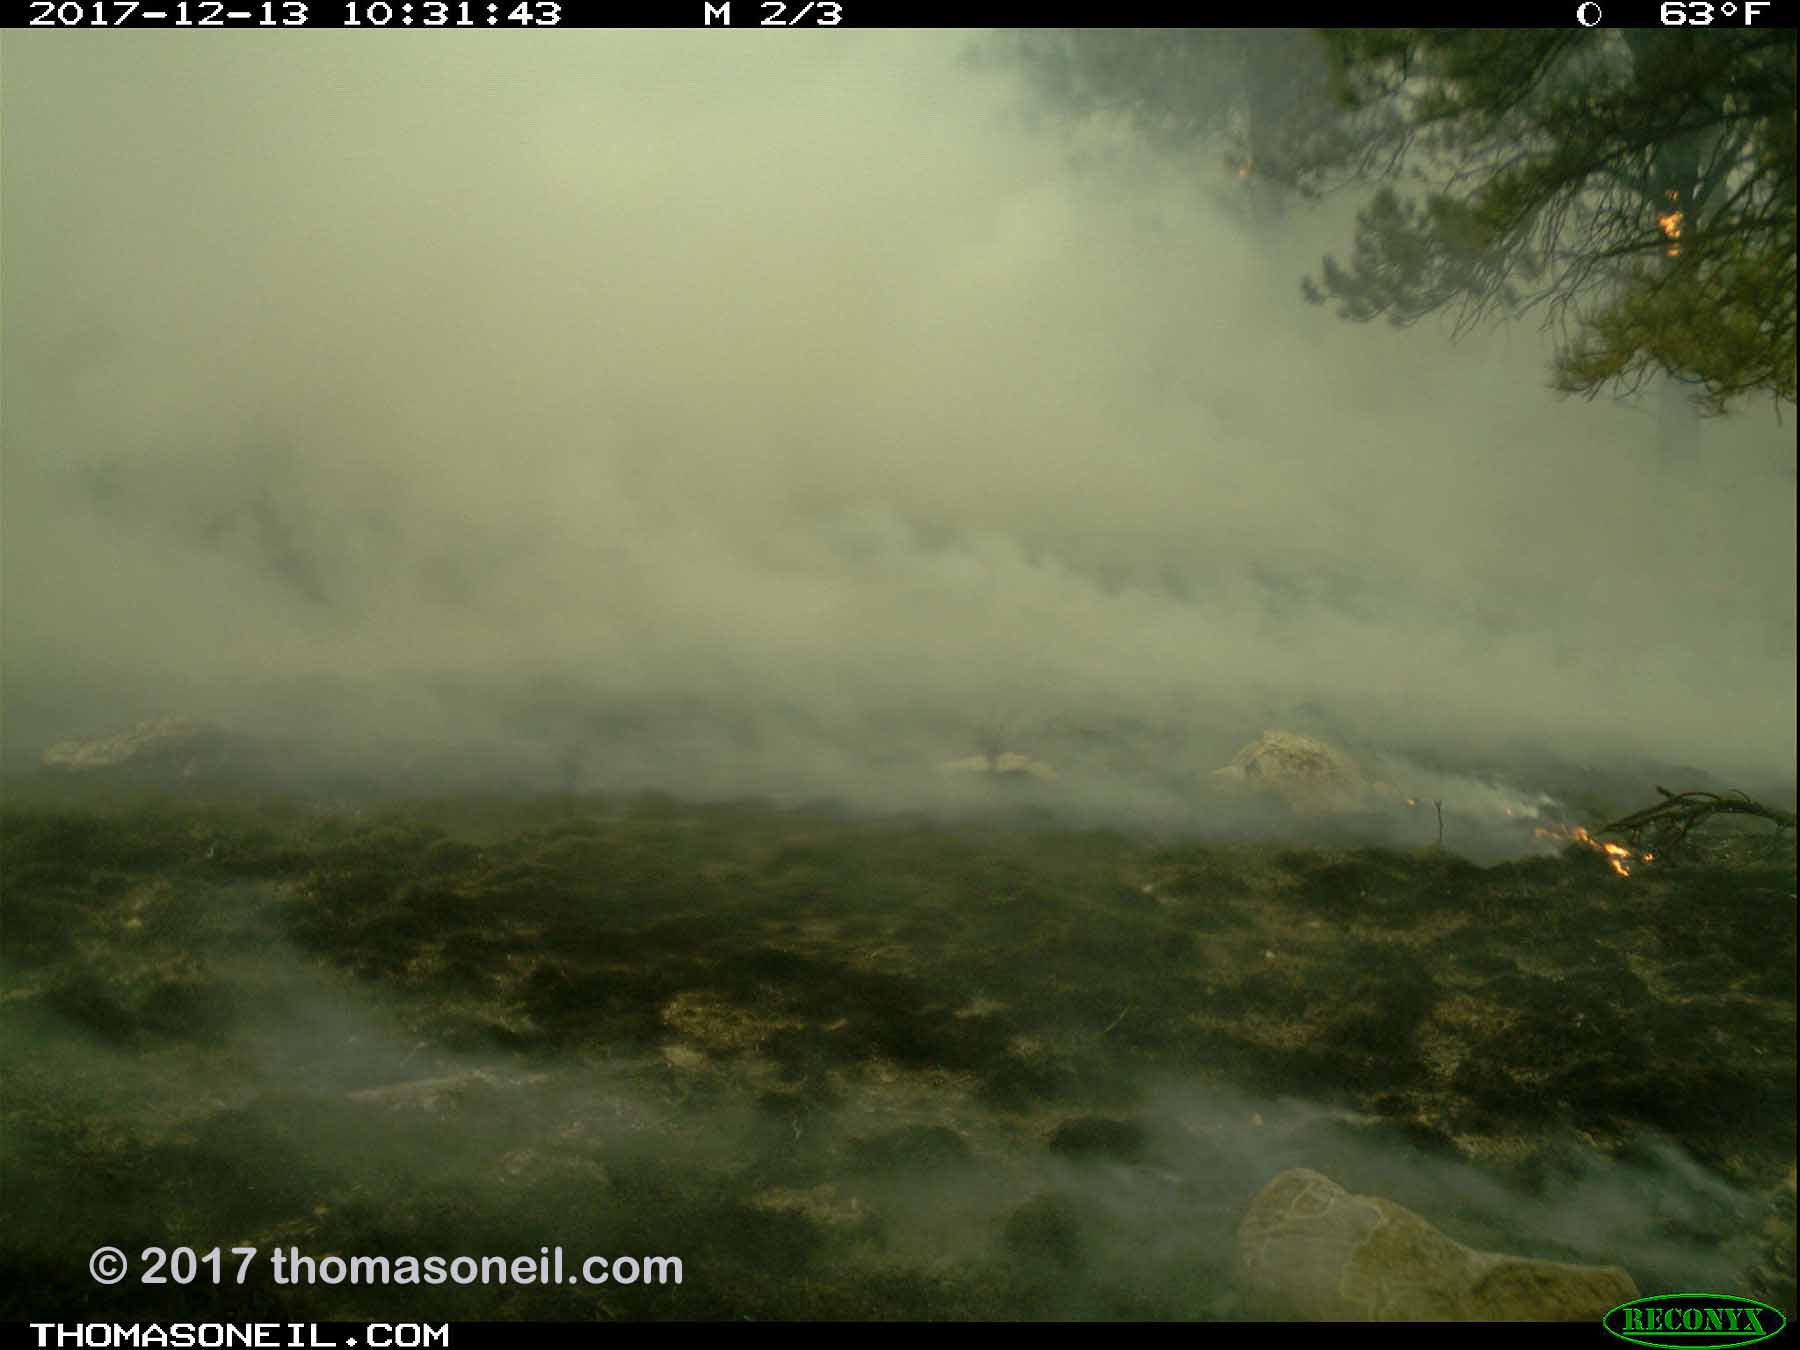 Less than nine minutes after the first image, the fire has charred the area and moved on, Wind Cave National Park.